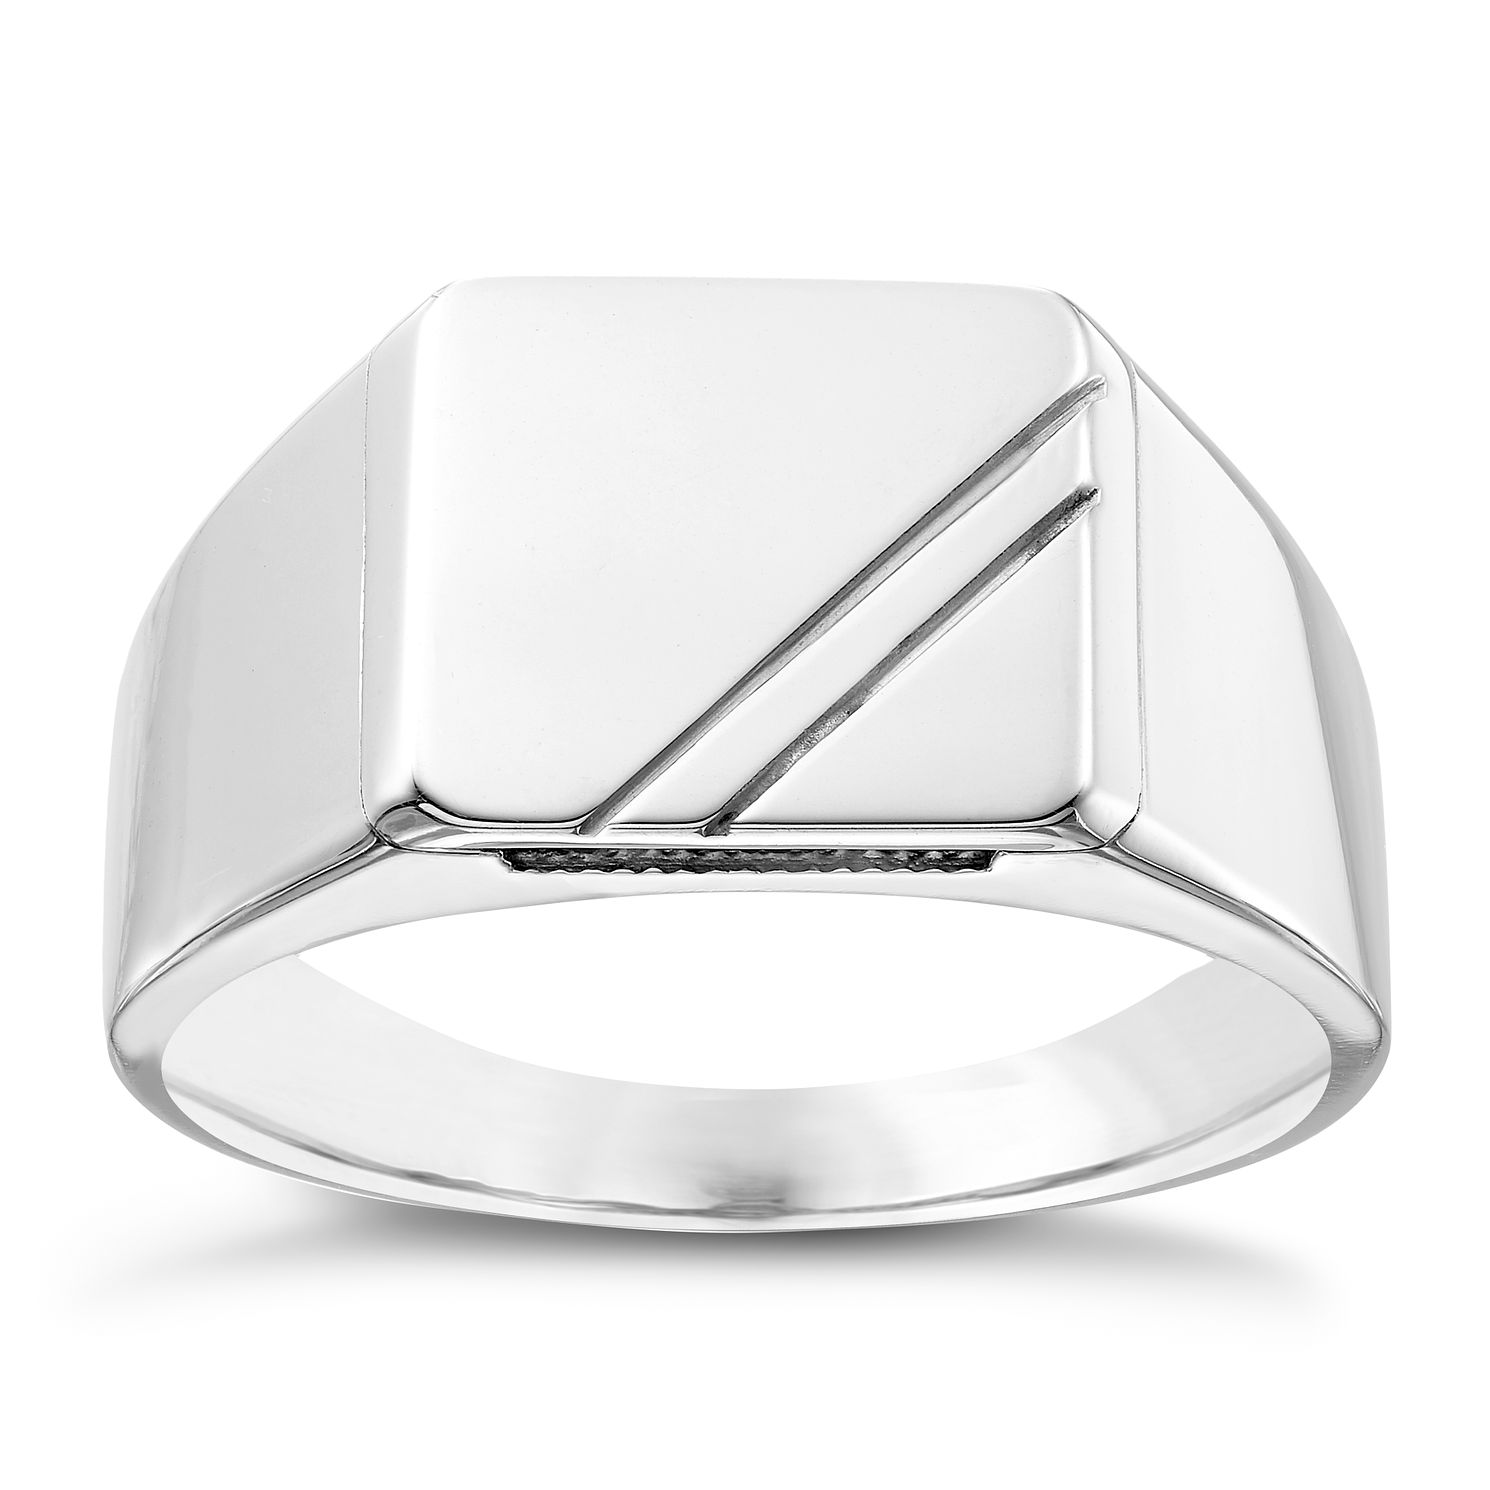 of a signet ring kind silver product guise jewellery